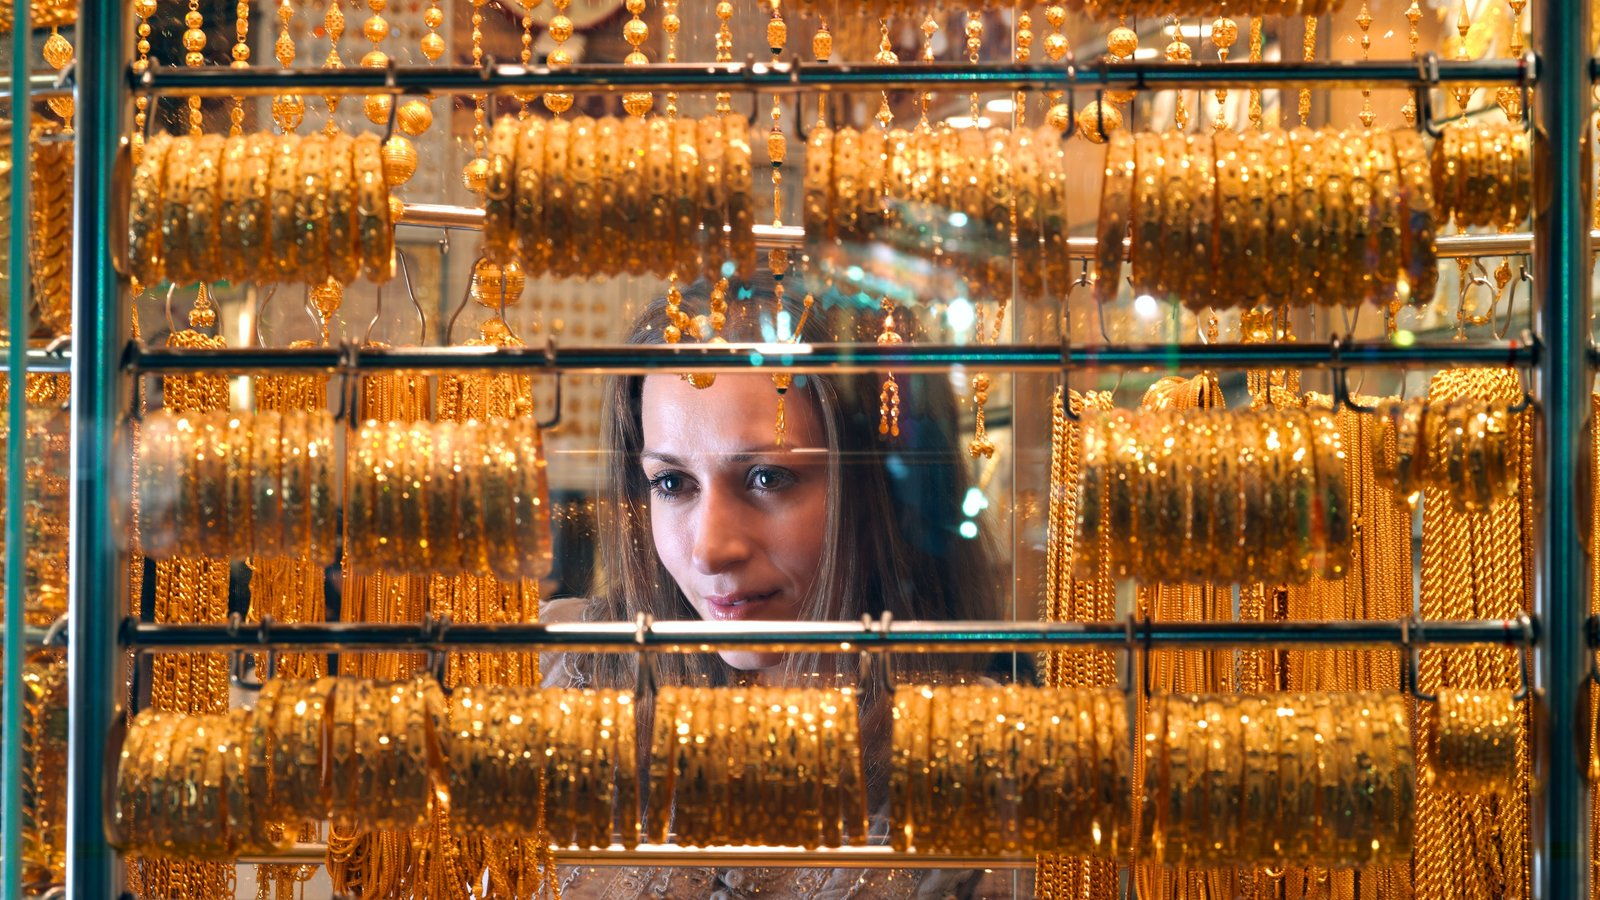 Gold Souk featuring interior views and shopping as well as an individual female